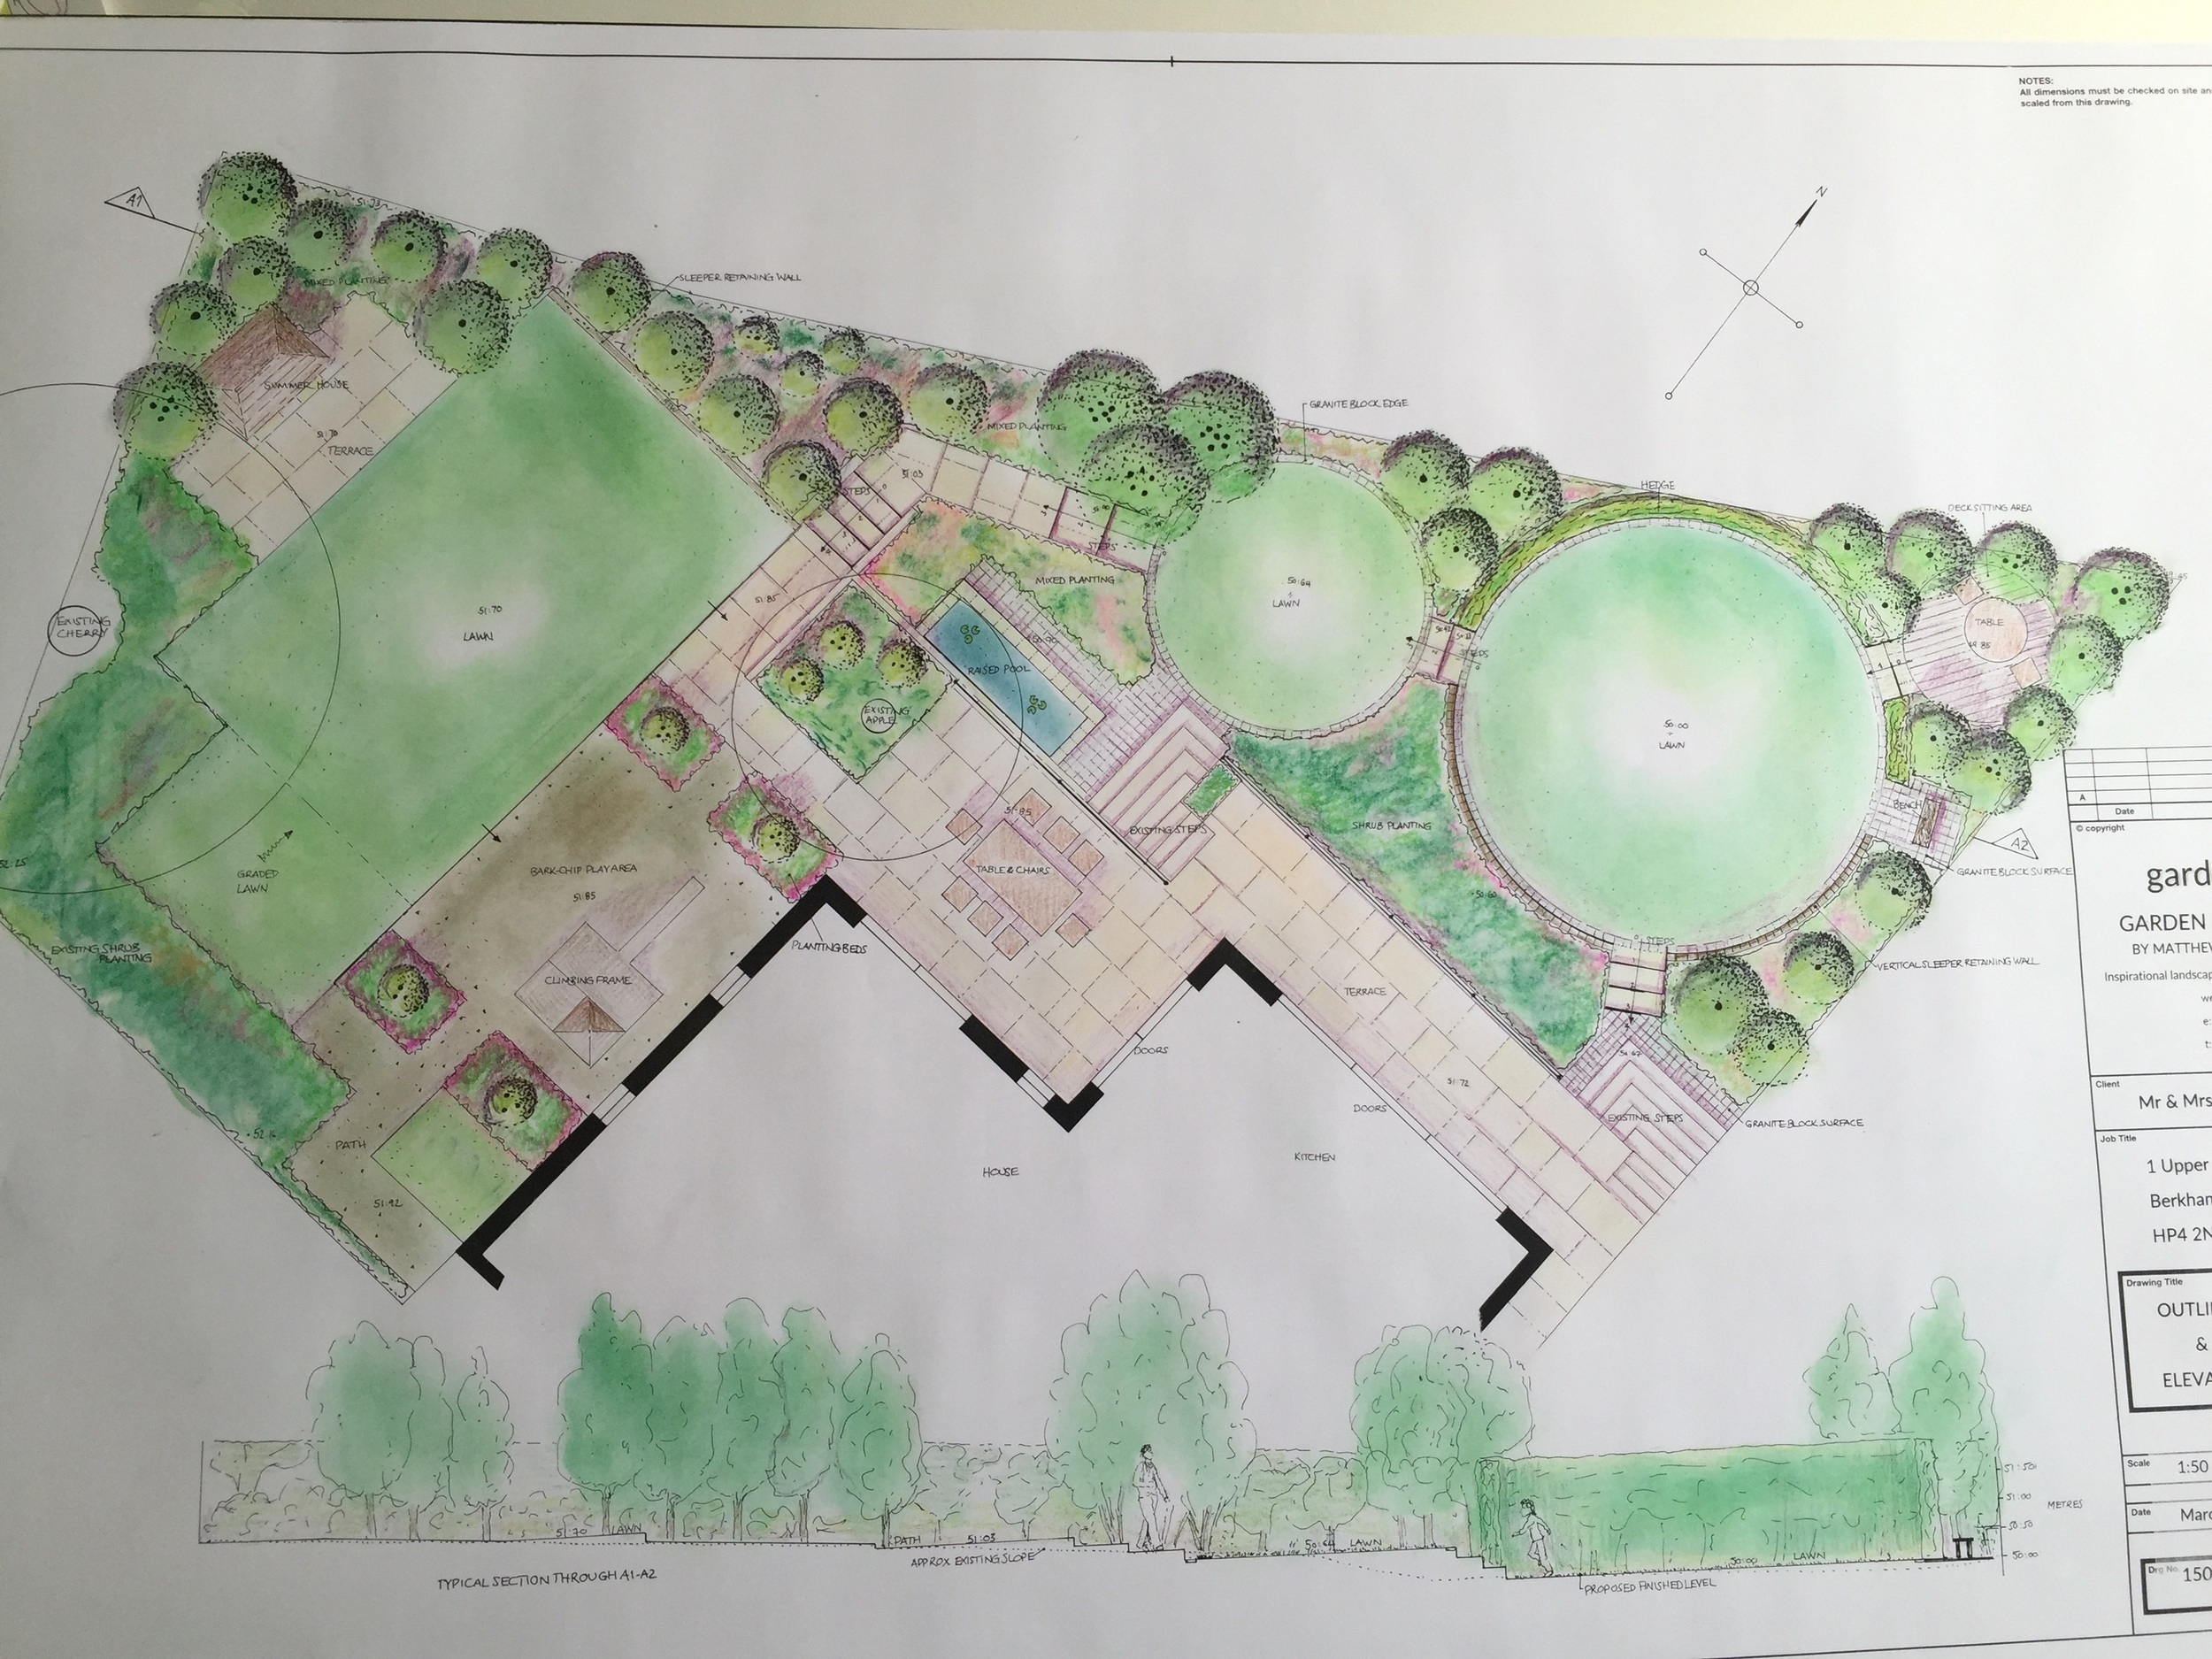 This design takes into account the very irregular shaped plot